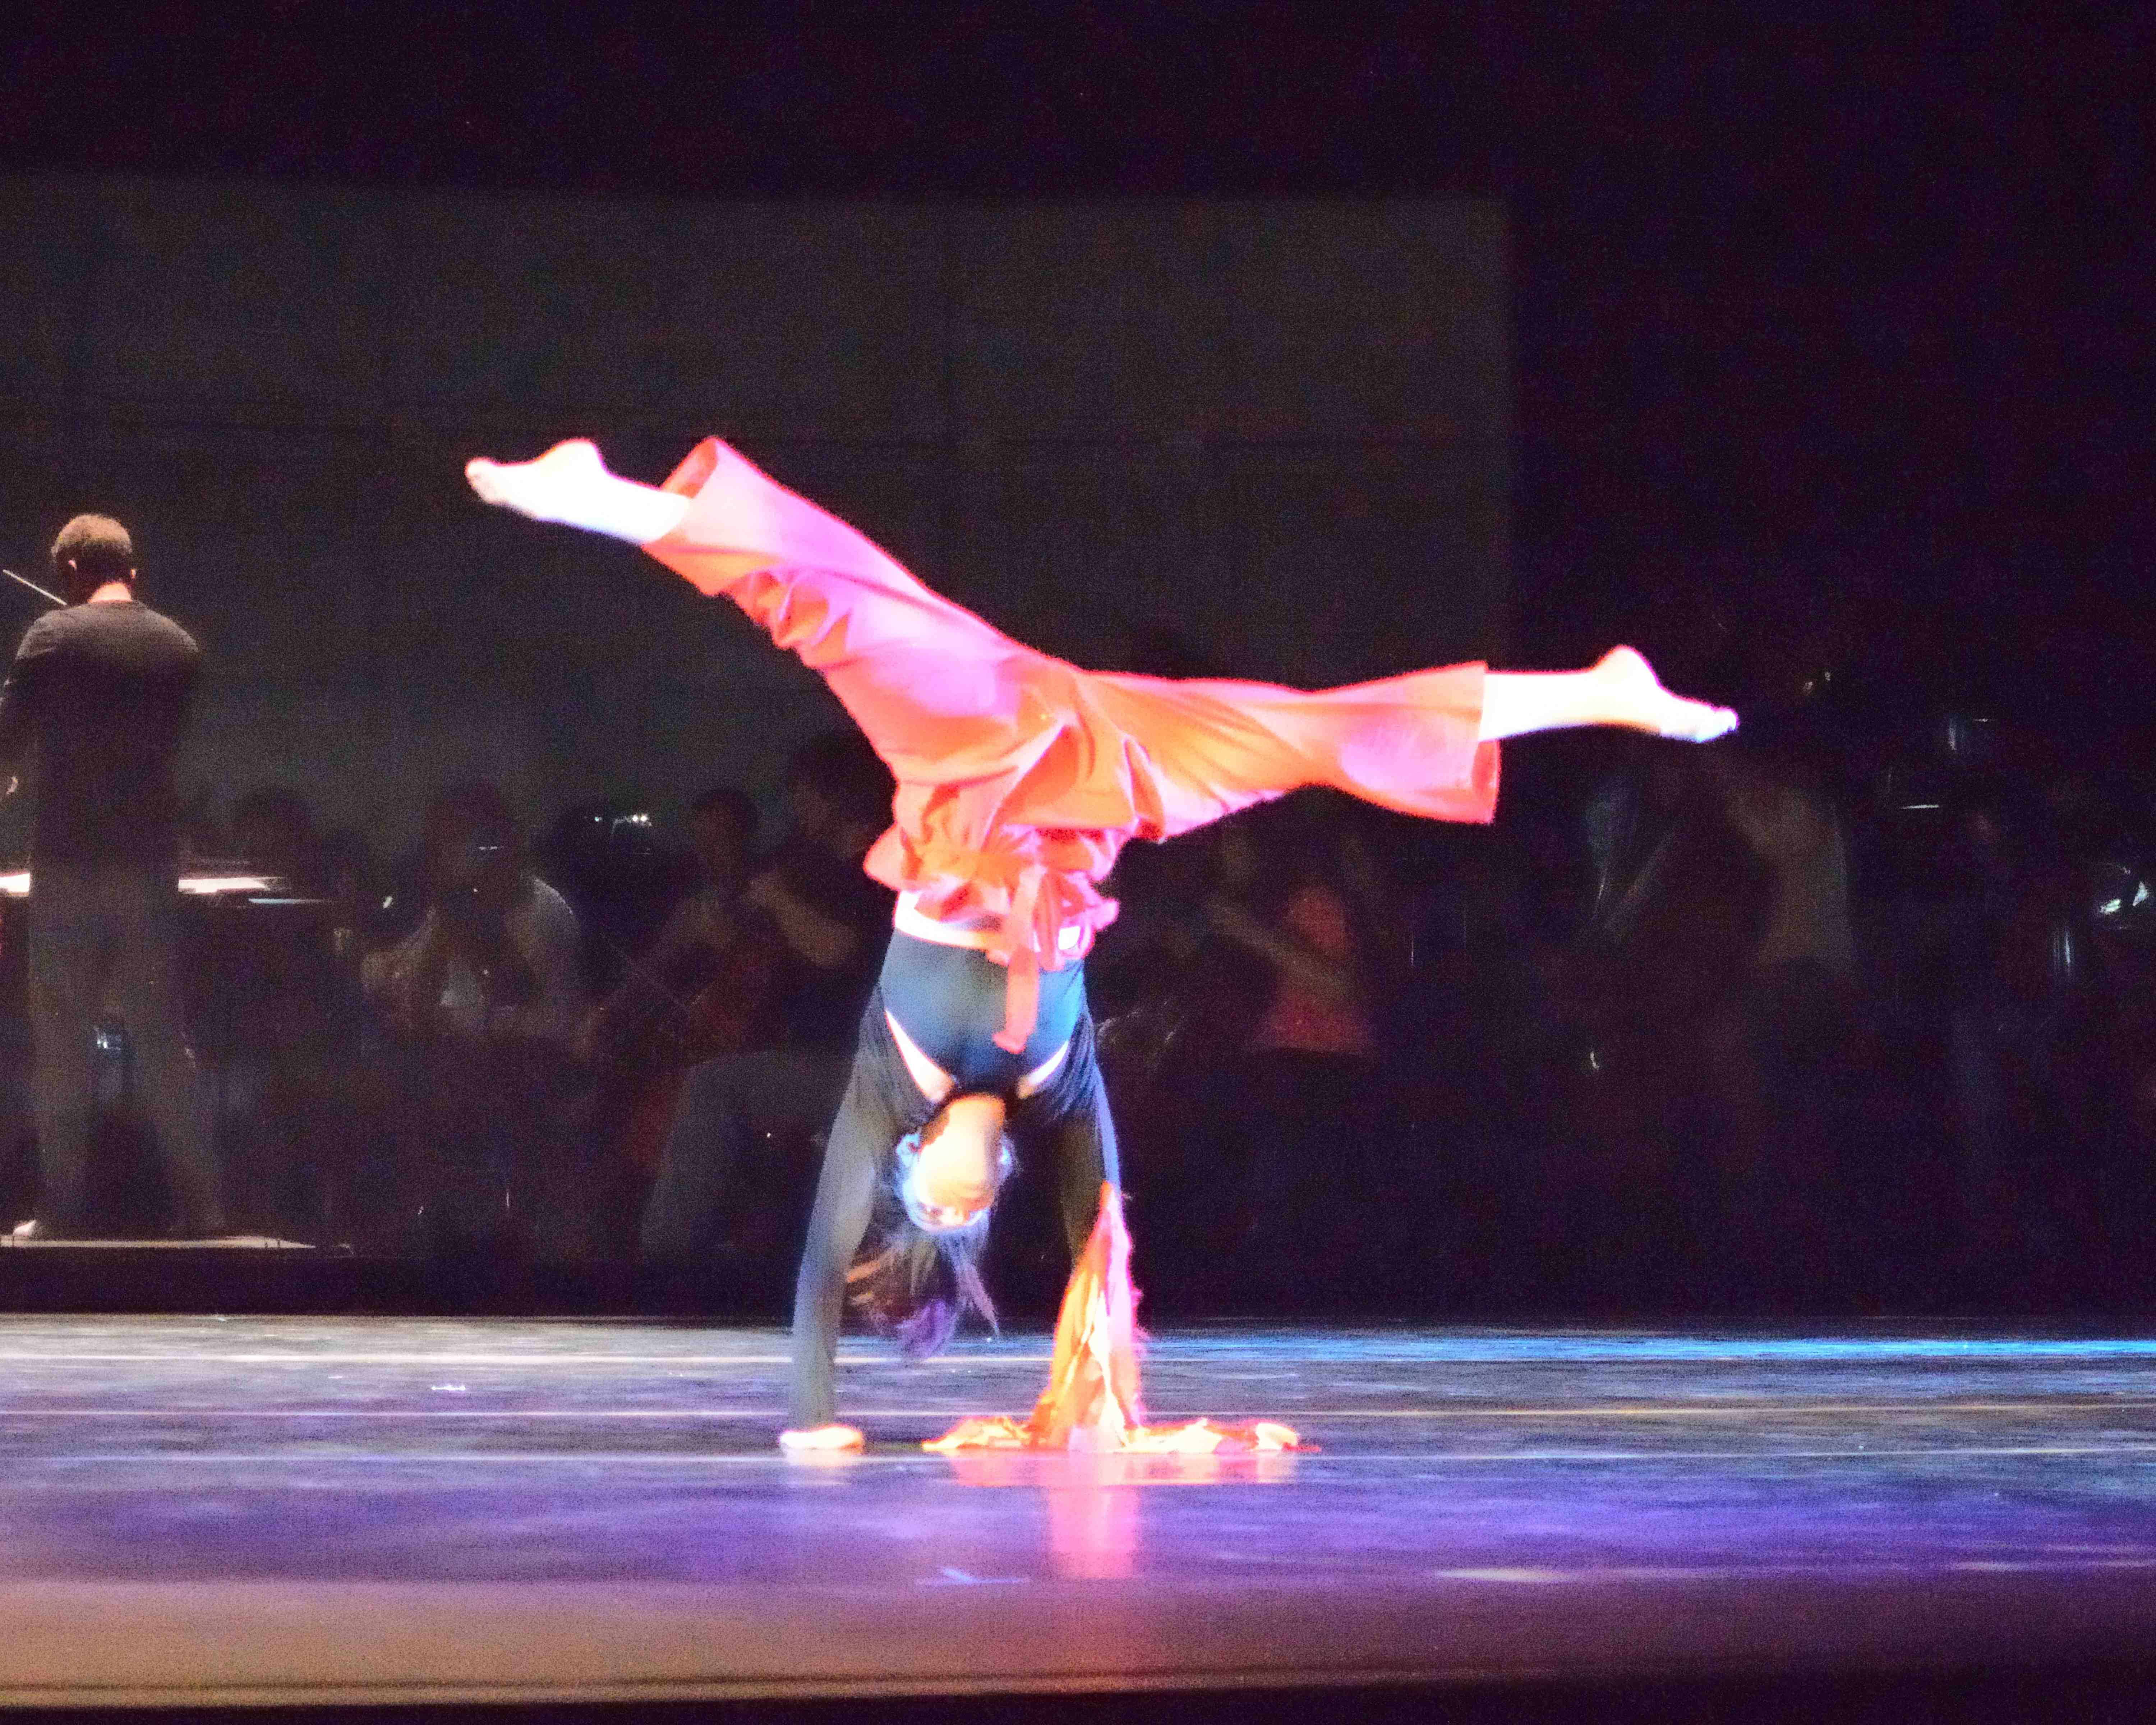 Dancer in handstand